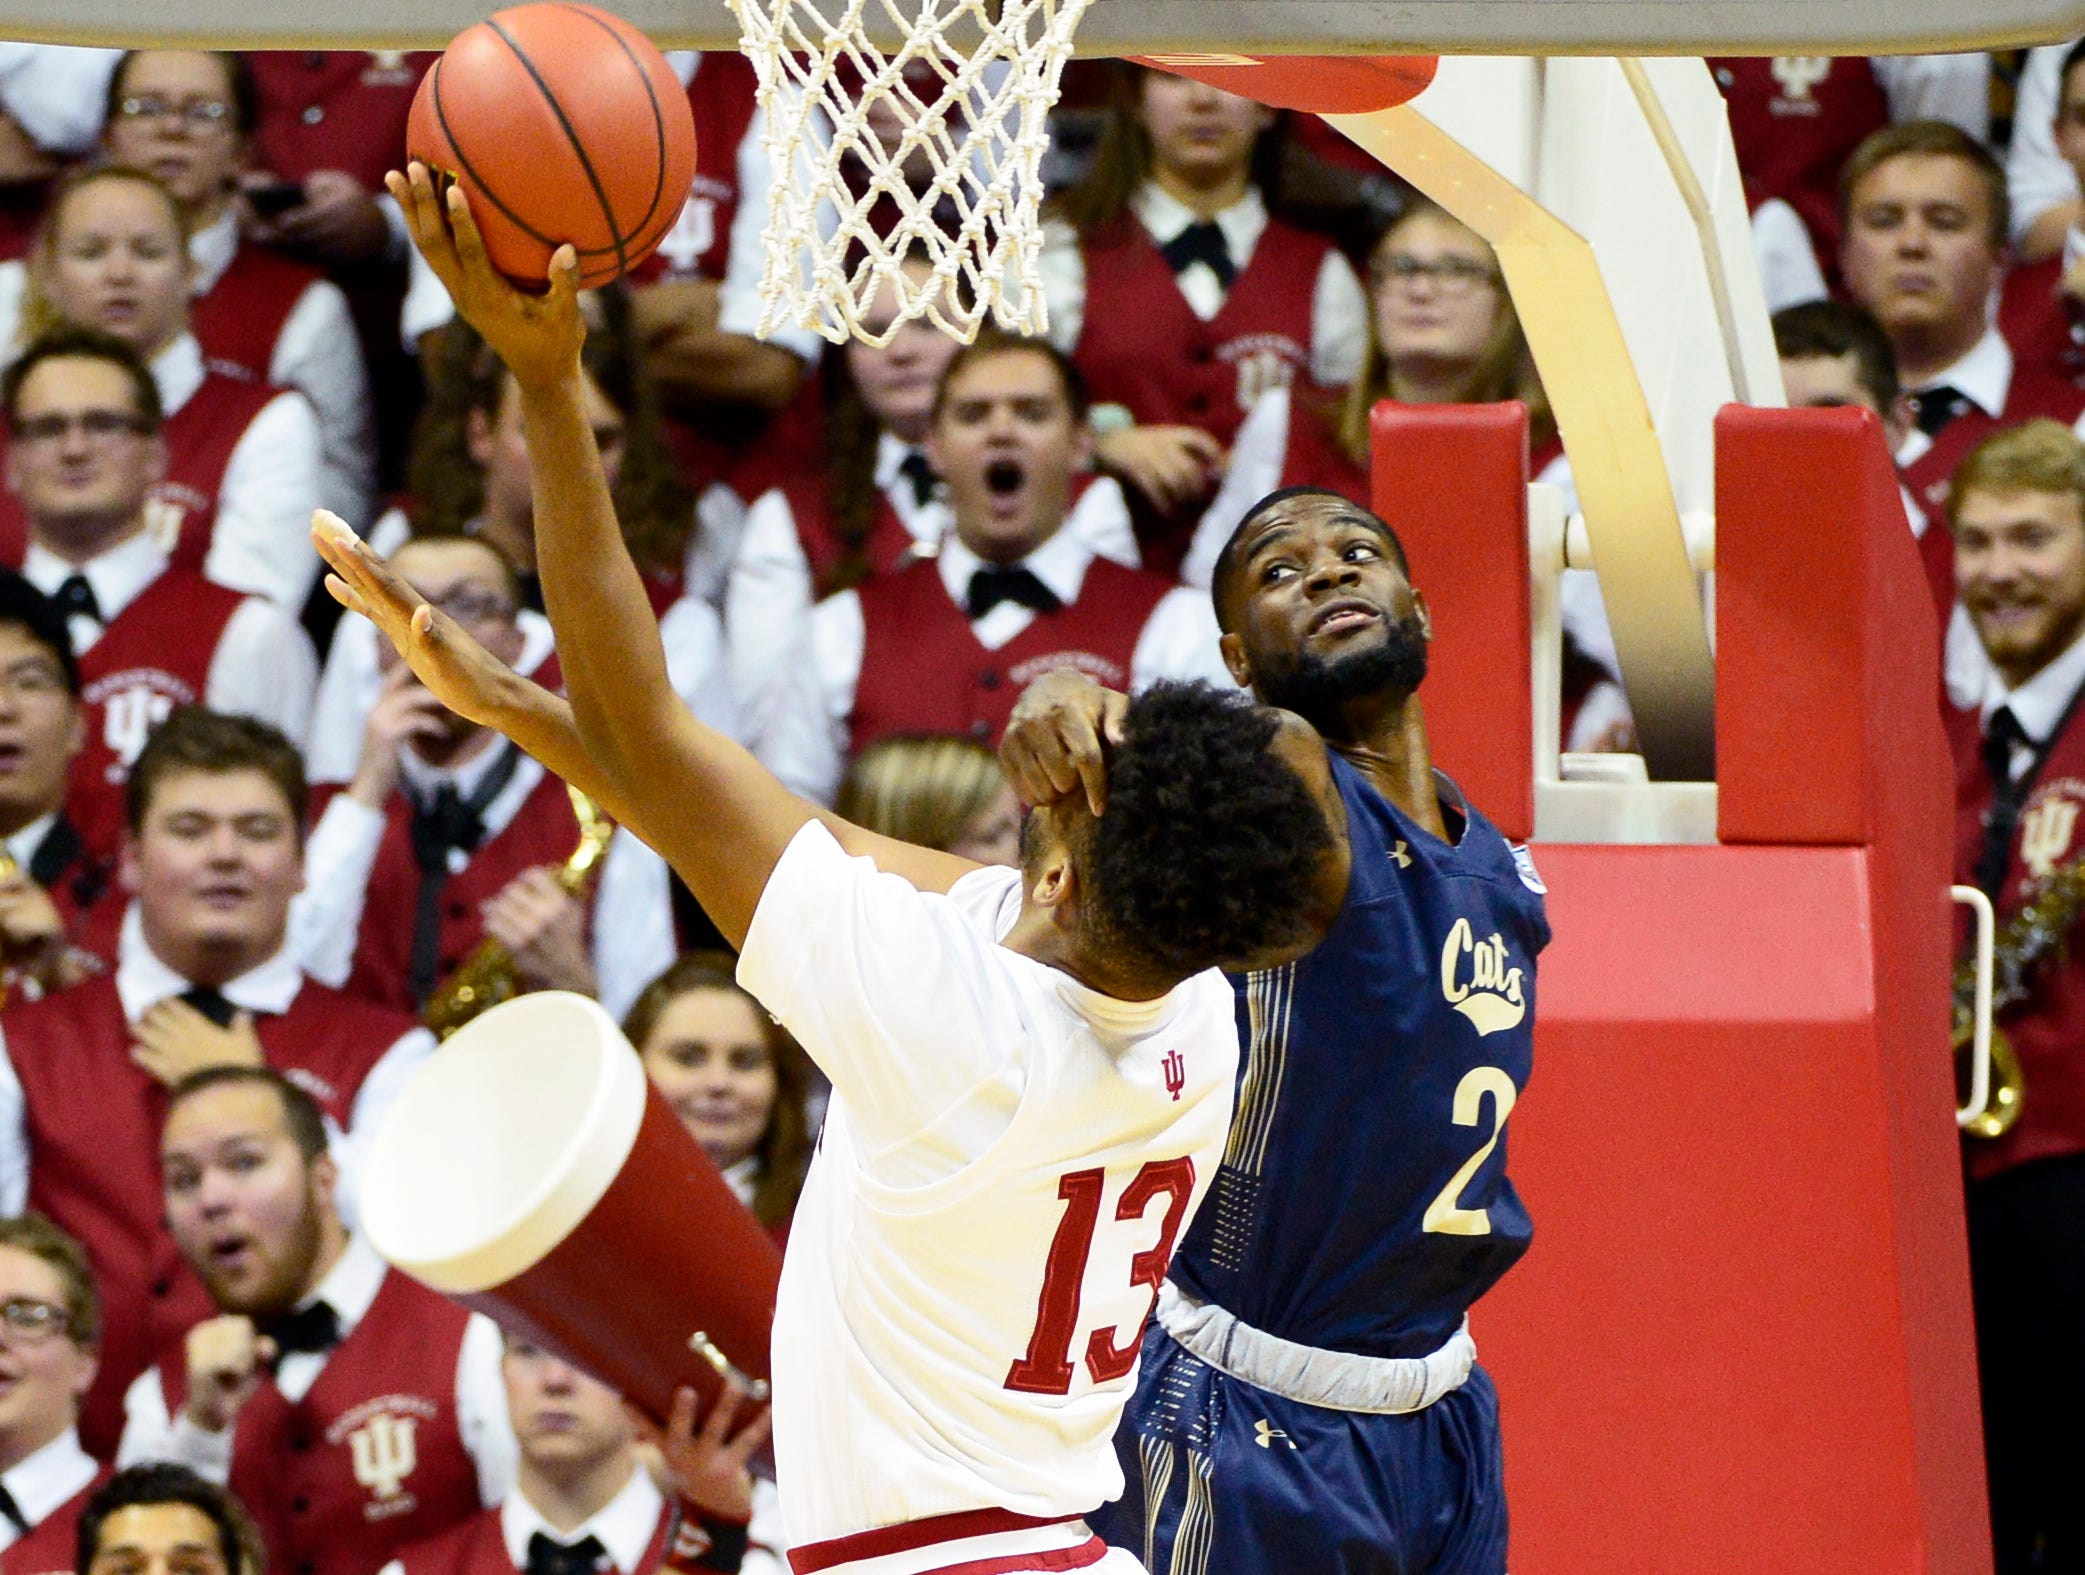 Indiana Hoosiers forward Juwan Morgan (13) is hit in the face as he goes to the basket during the game against Montana State at Simon Skjodt Assembly Hall in Bloomington, Ind., on Friday, Nov. 9, 2018.